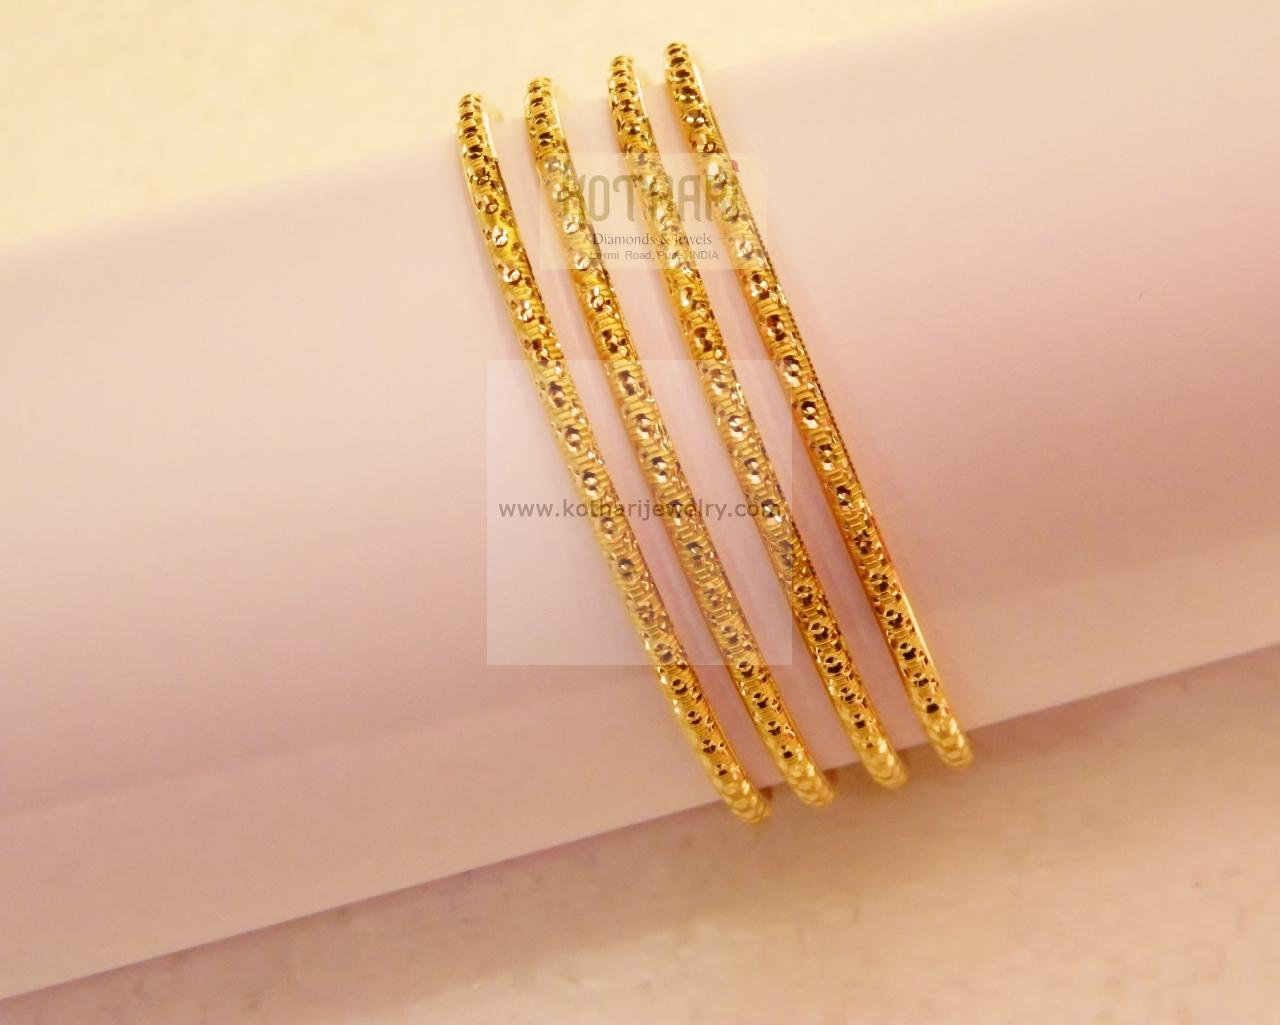 bracelet dp karat gold yellow bracelets jewelry bangle amazon bangles com